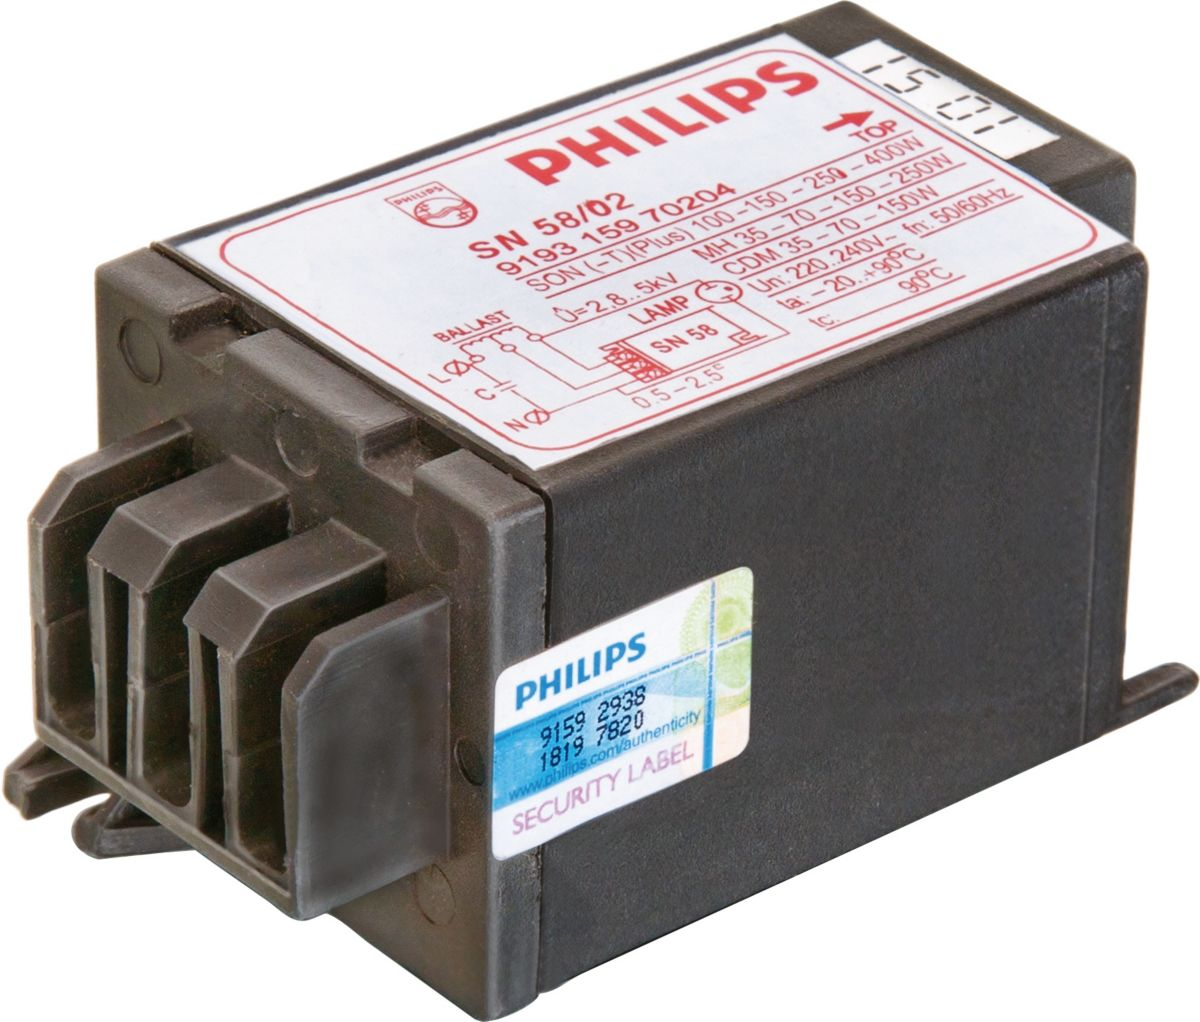 SN 5802 Electronic Ignitors for HID lamp circuits (India